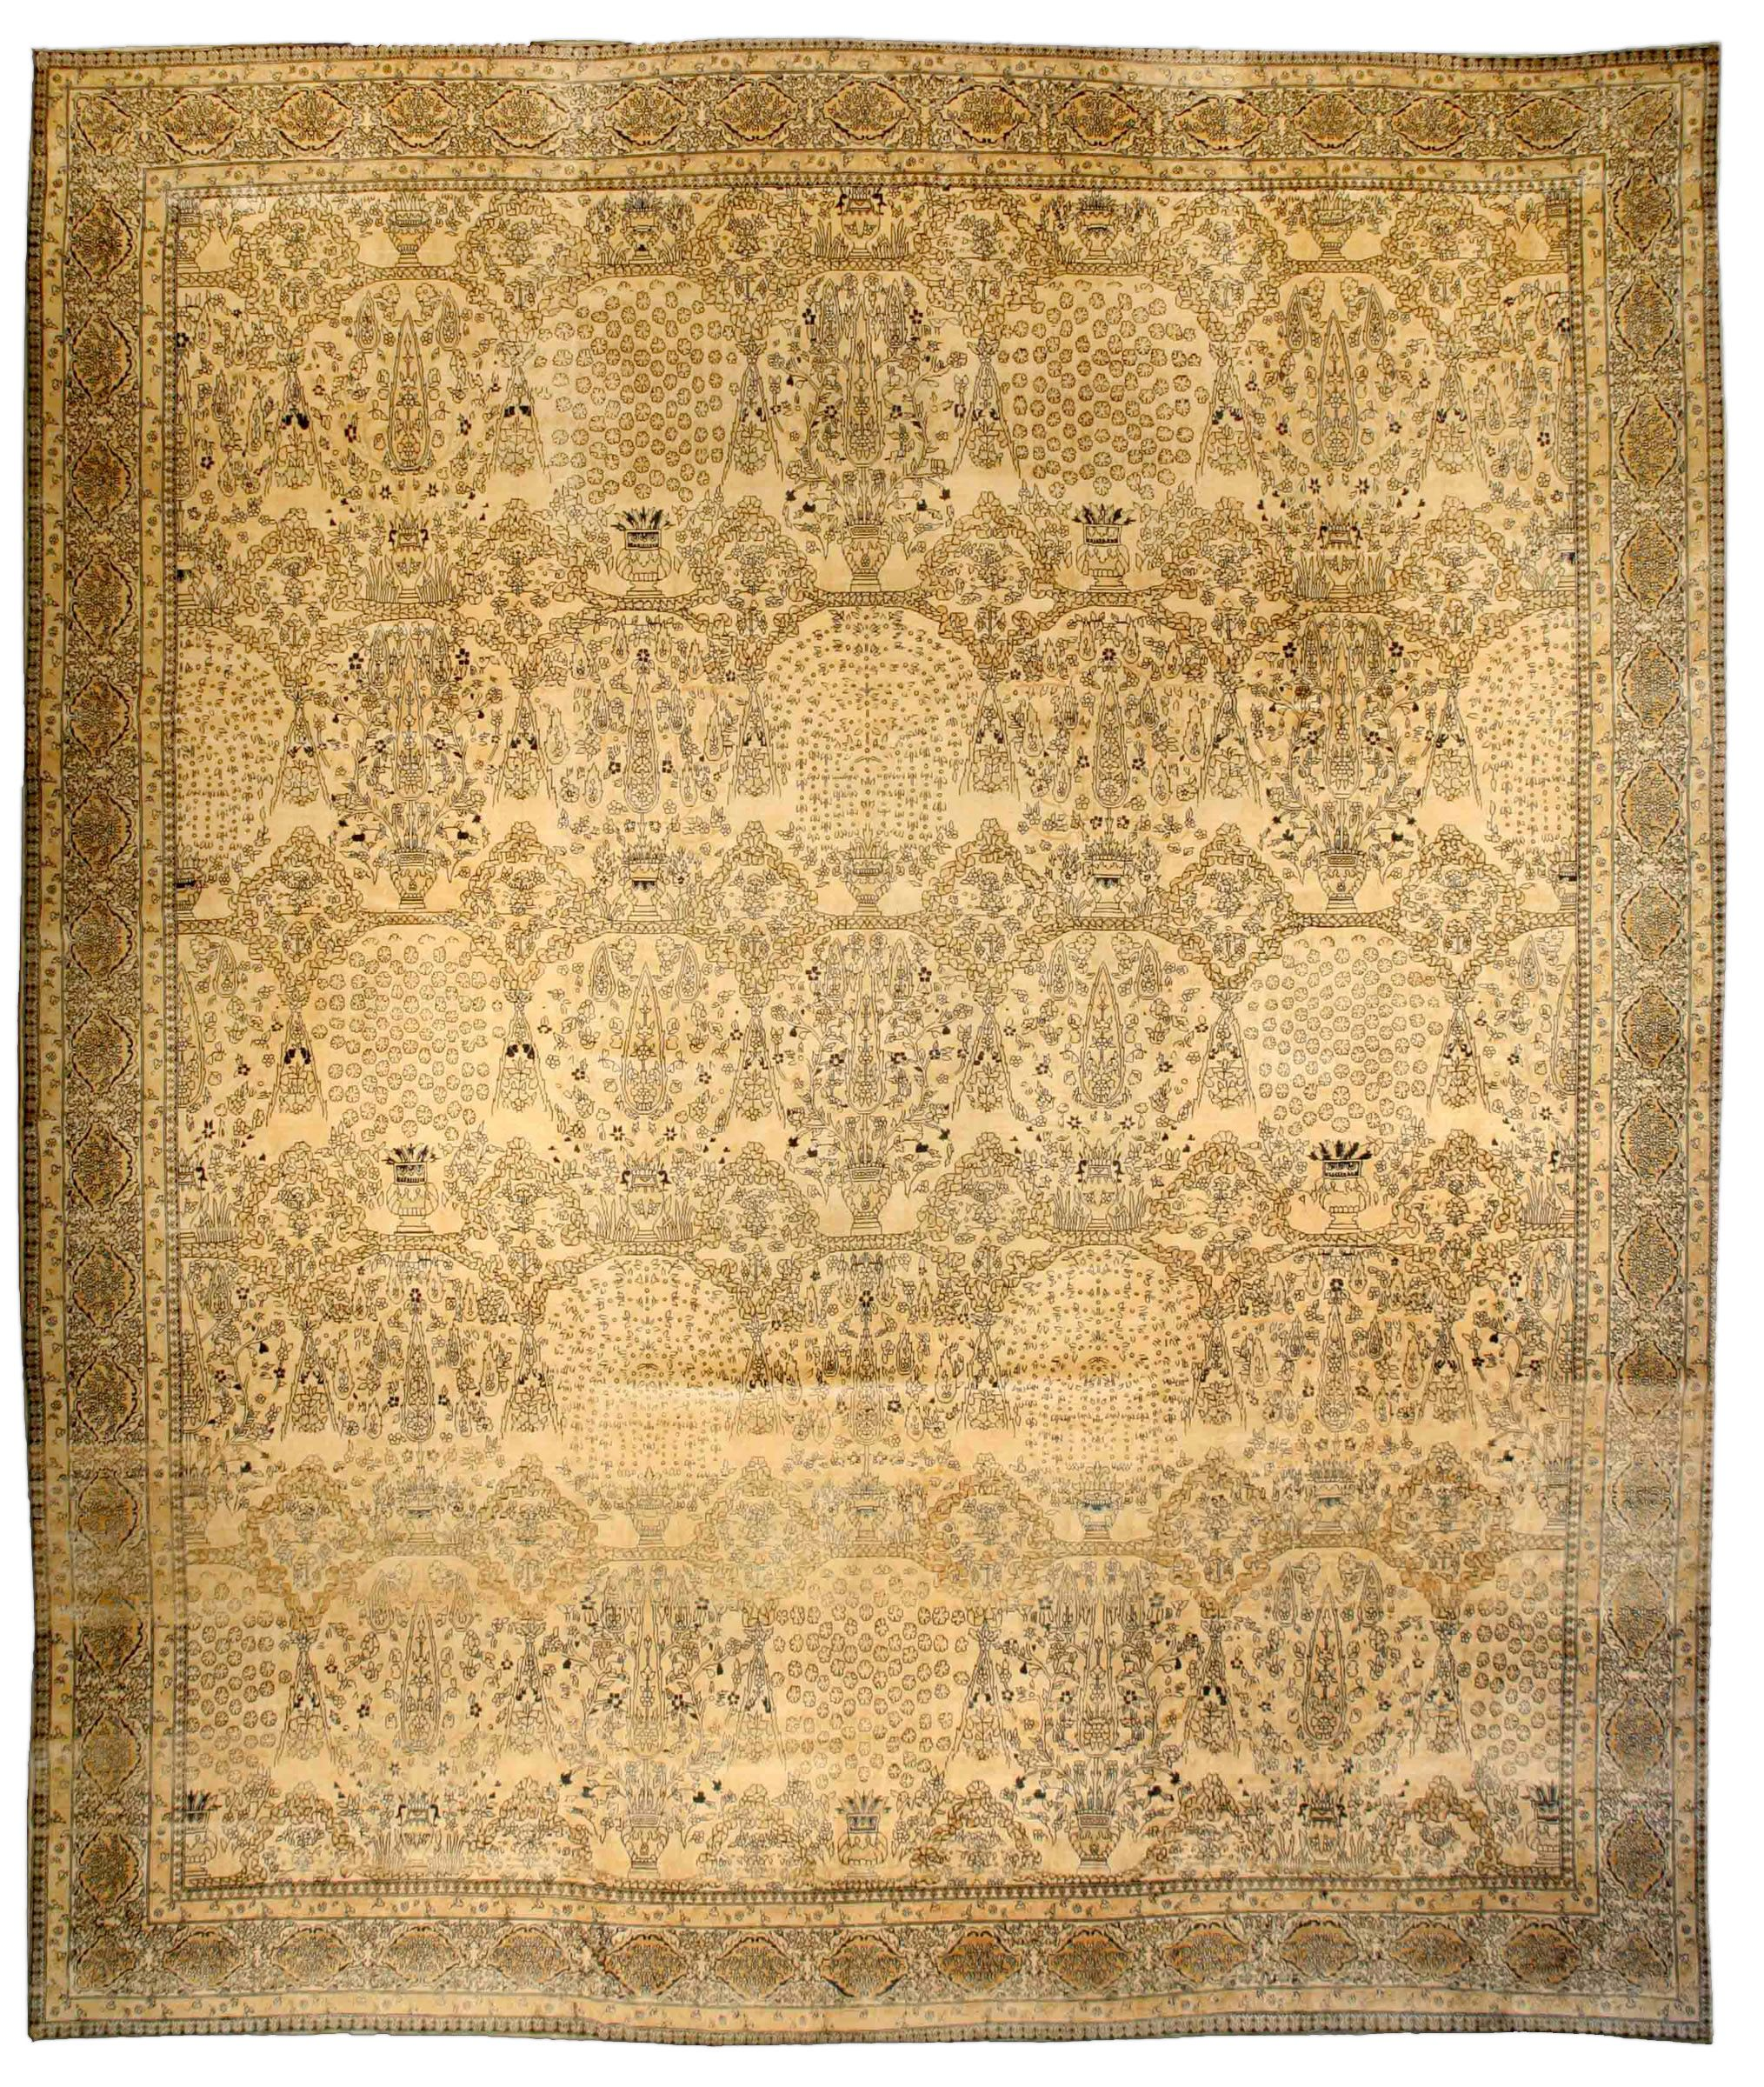 Item No. BB3324 Circa: 1920 | Indian rugs, Decorative vases and ...